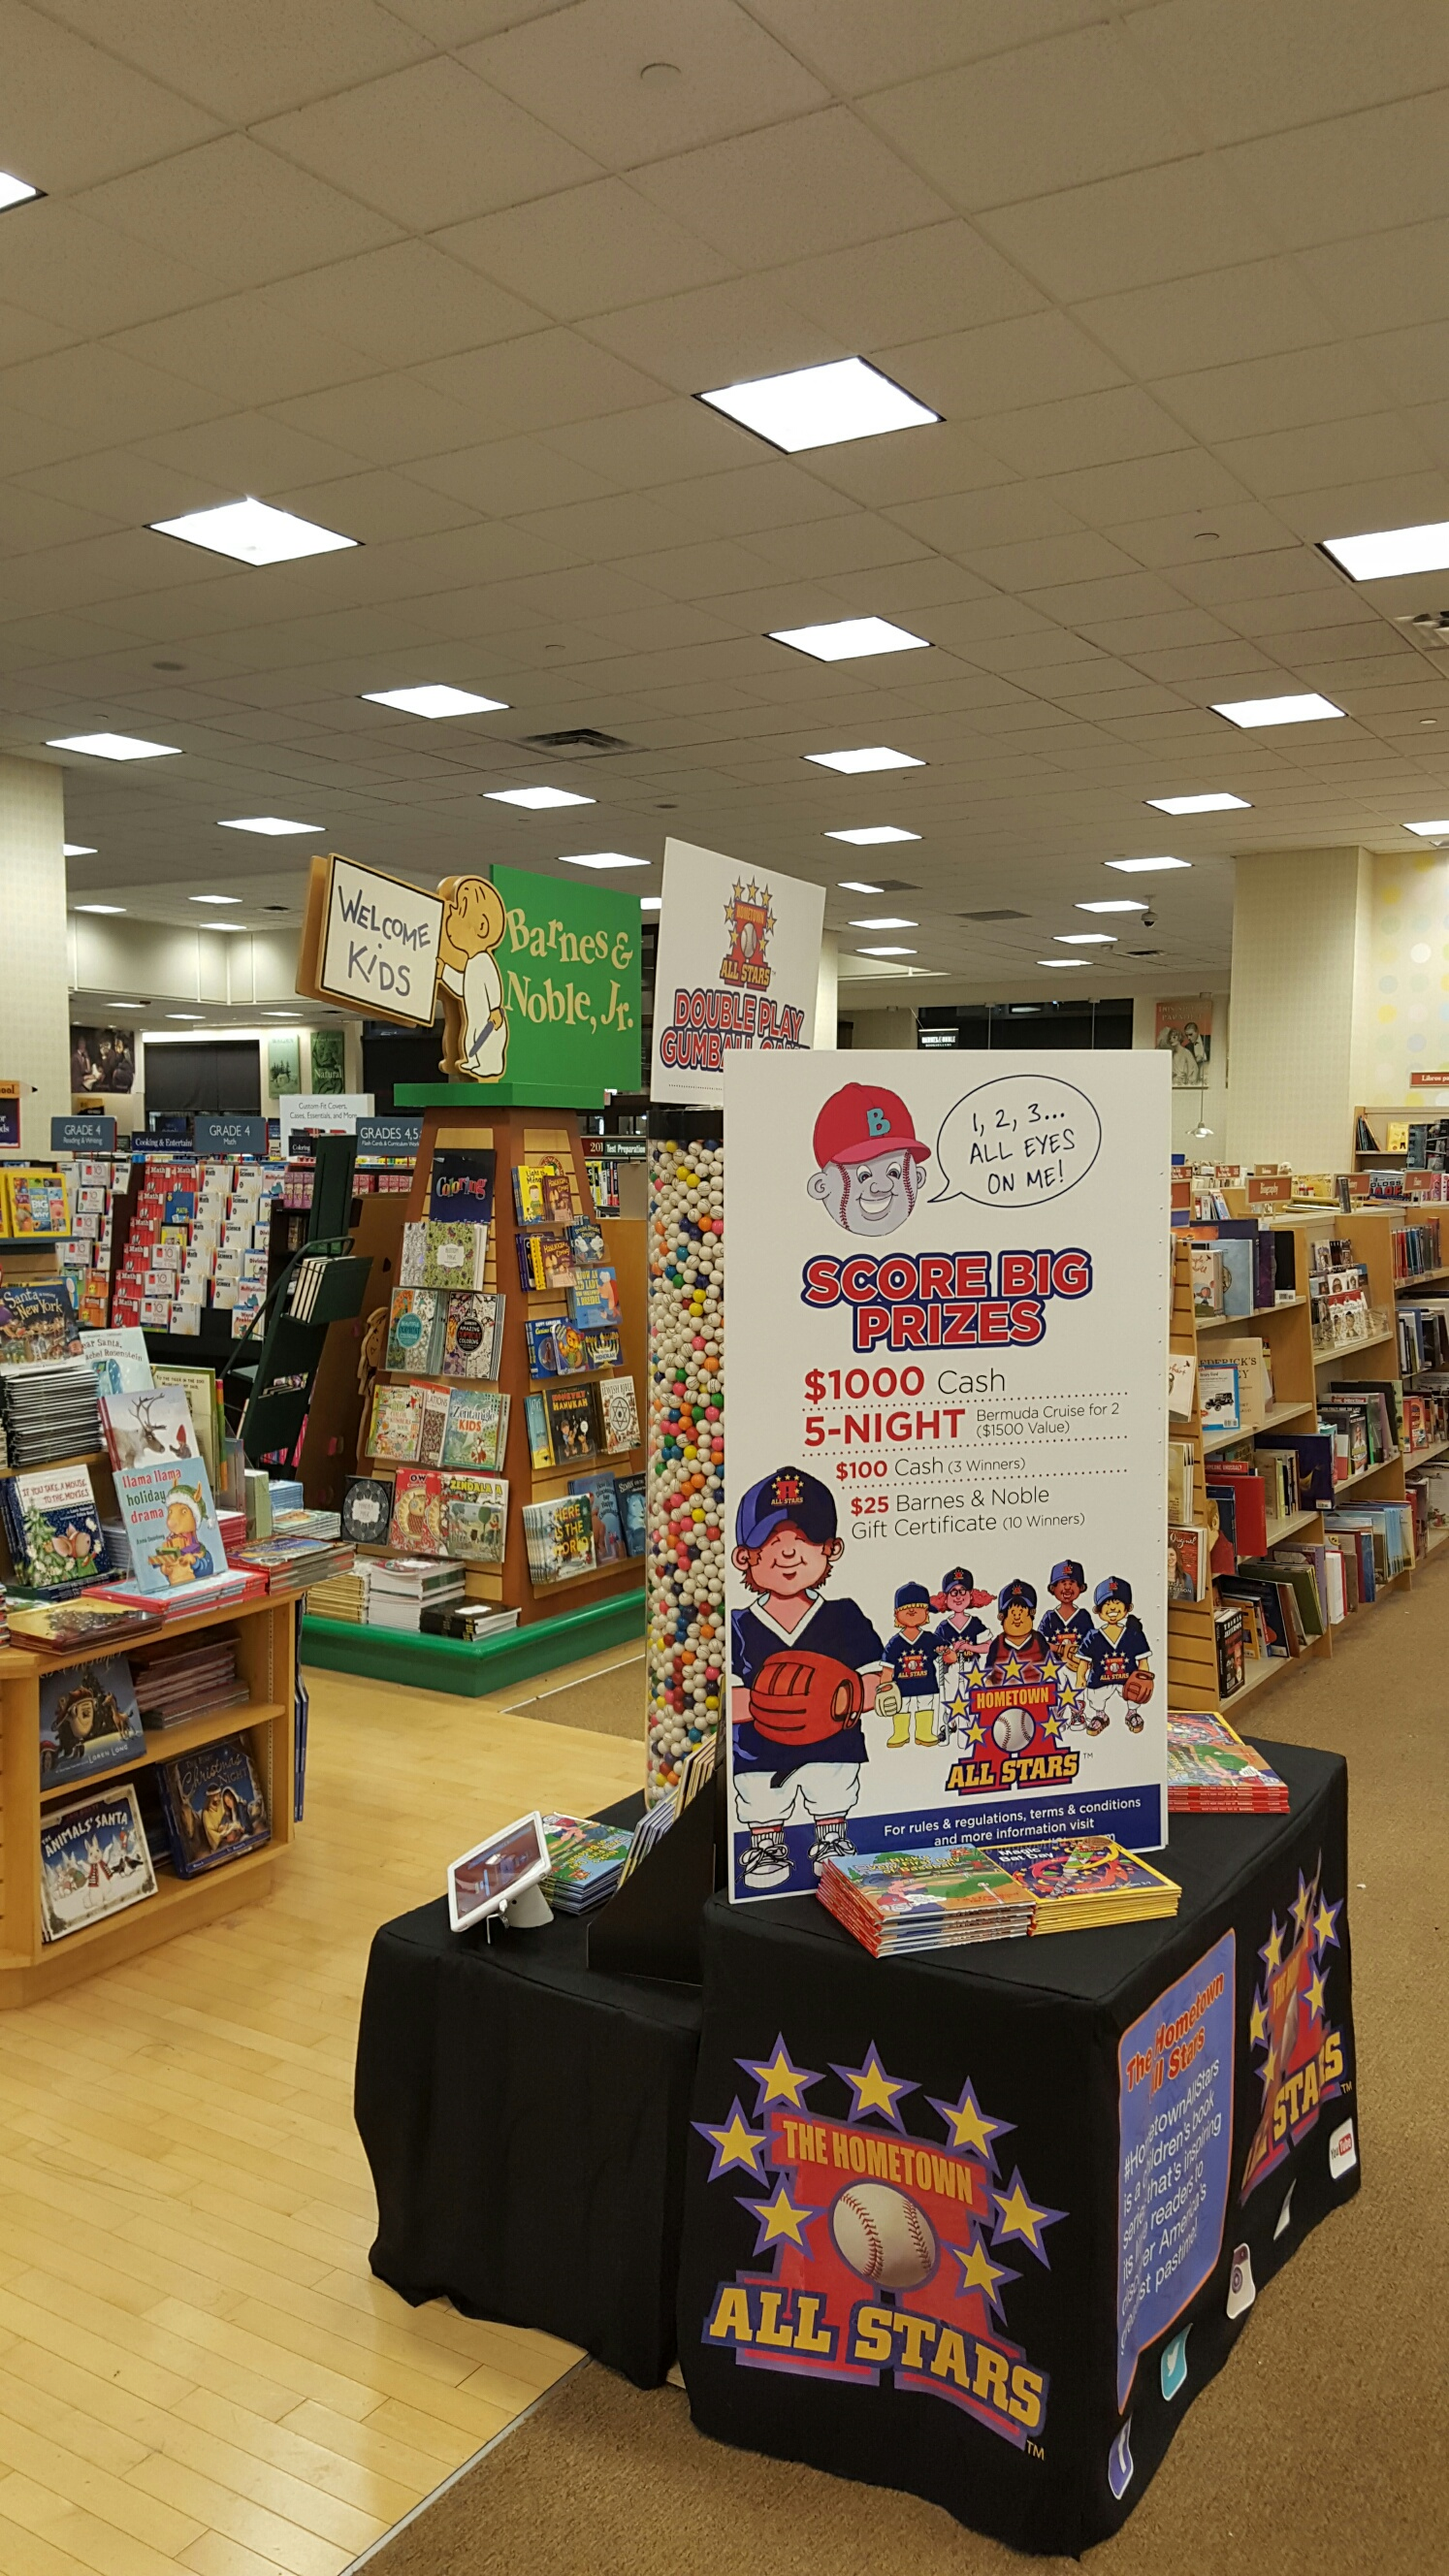 Contest at Barnes & Noble